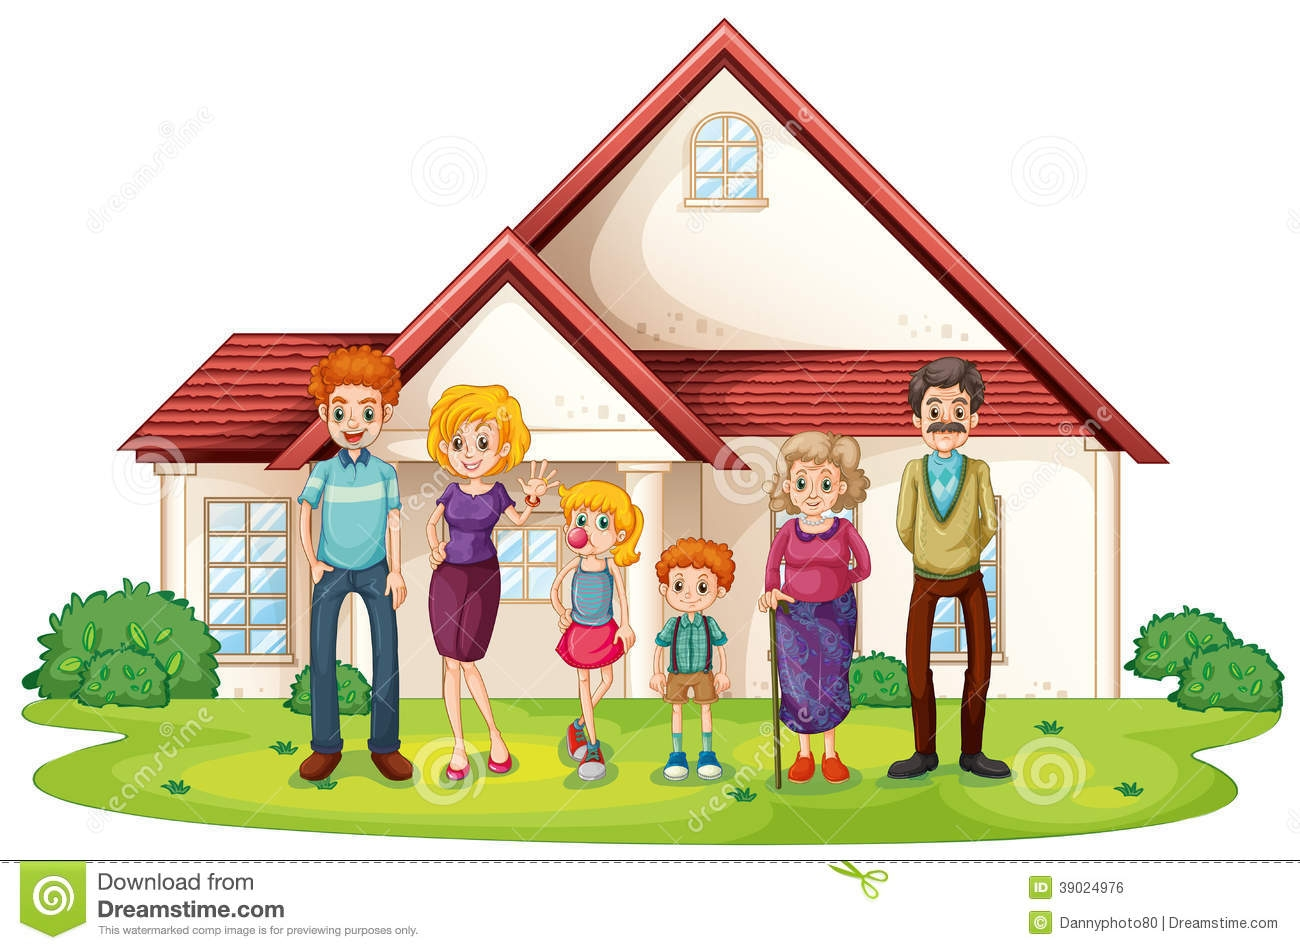 Home and family clipart » Clipart Station.